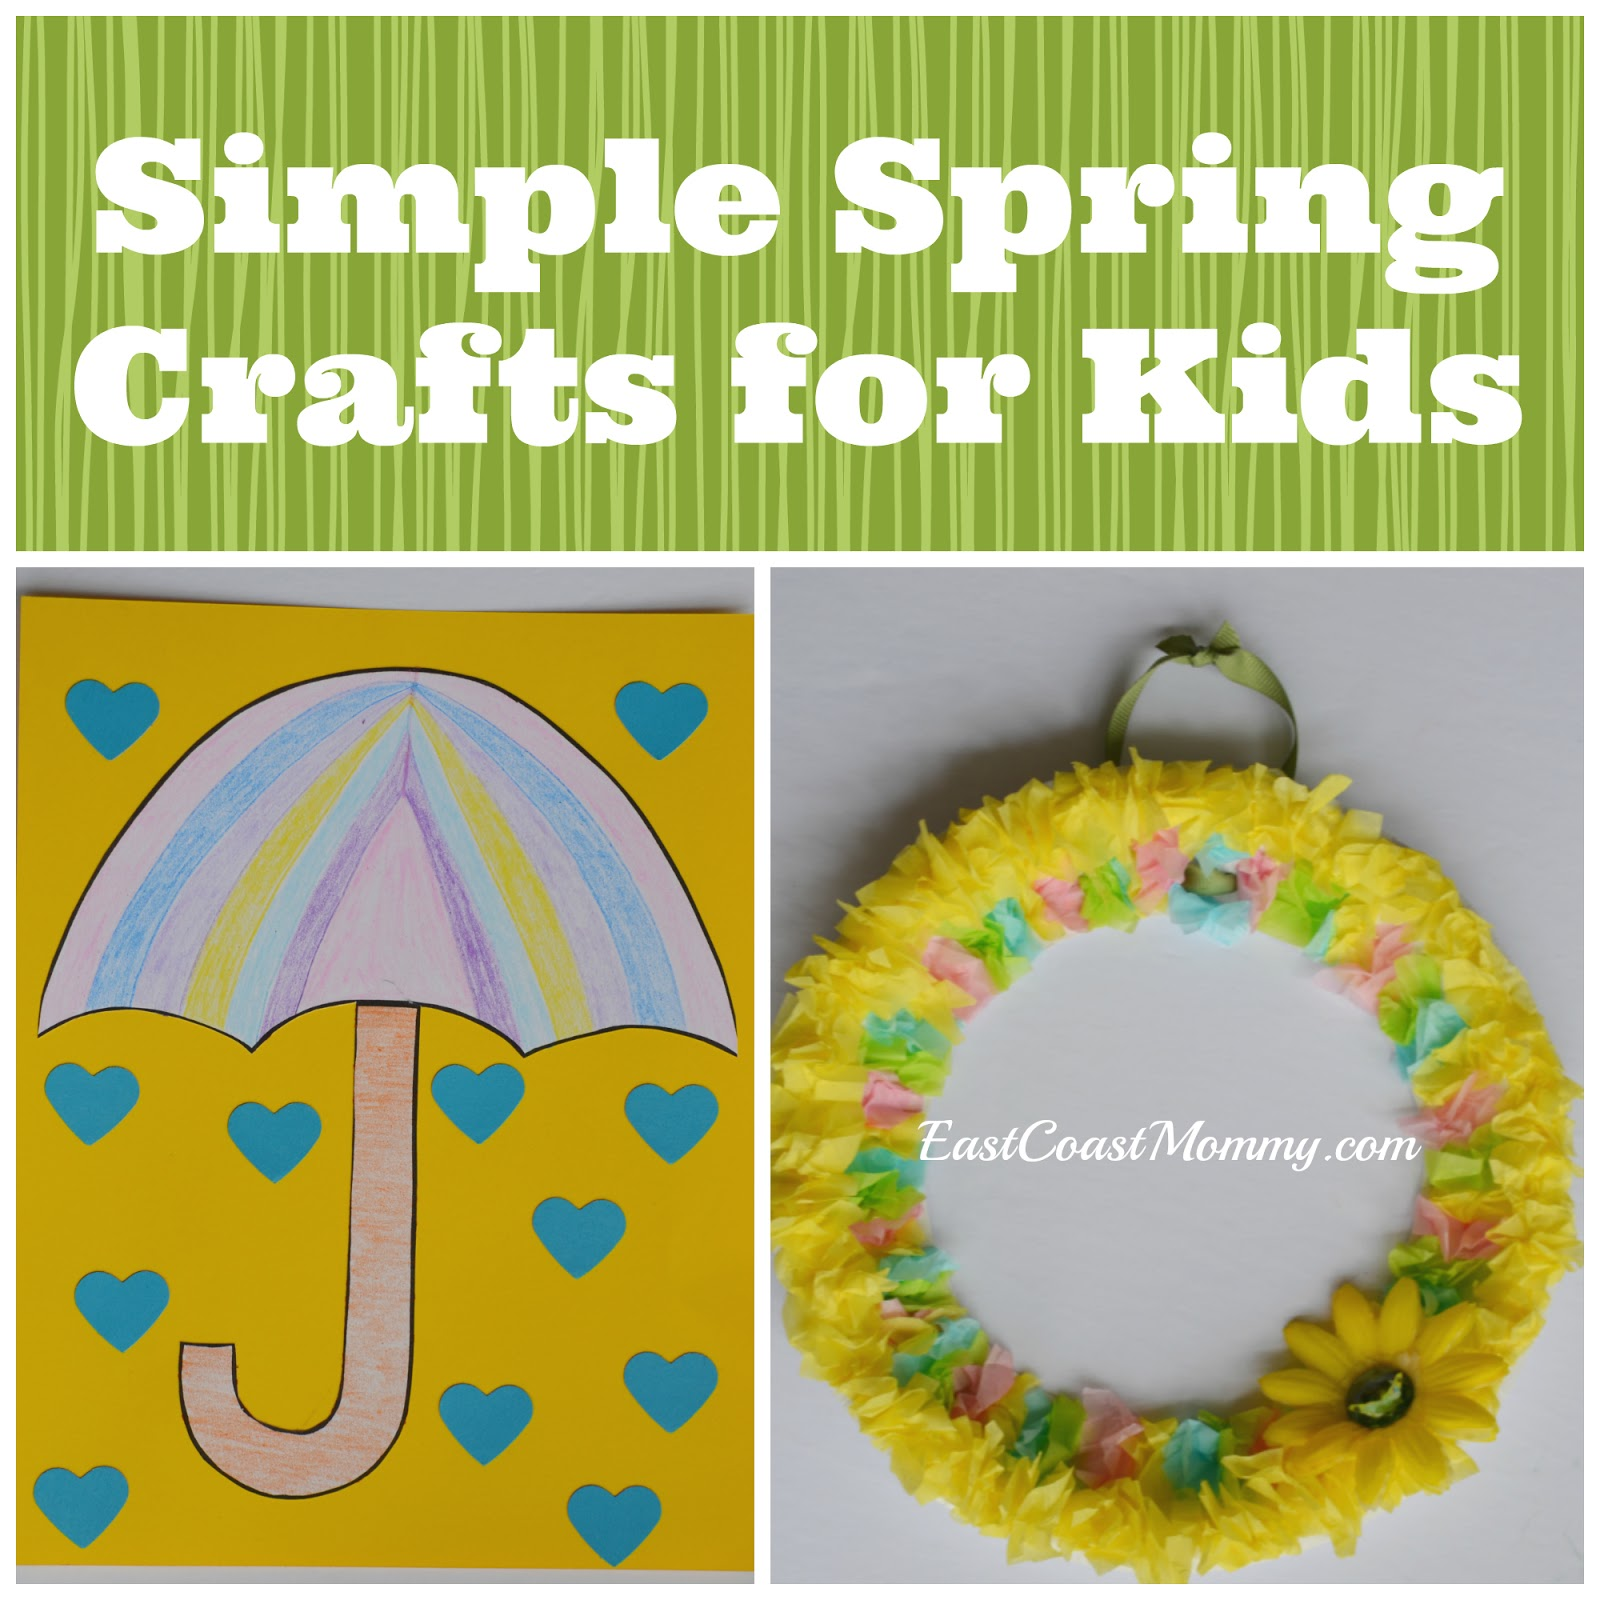 East Coast Mommy: Simple Spring Crafts for Kids